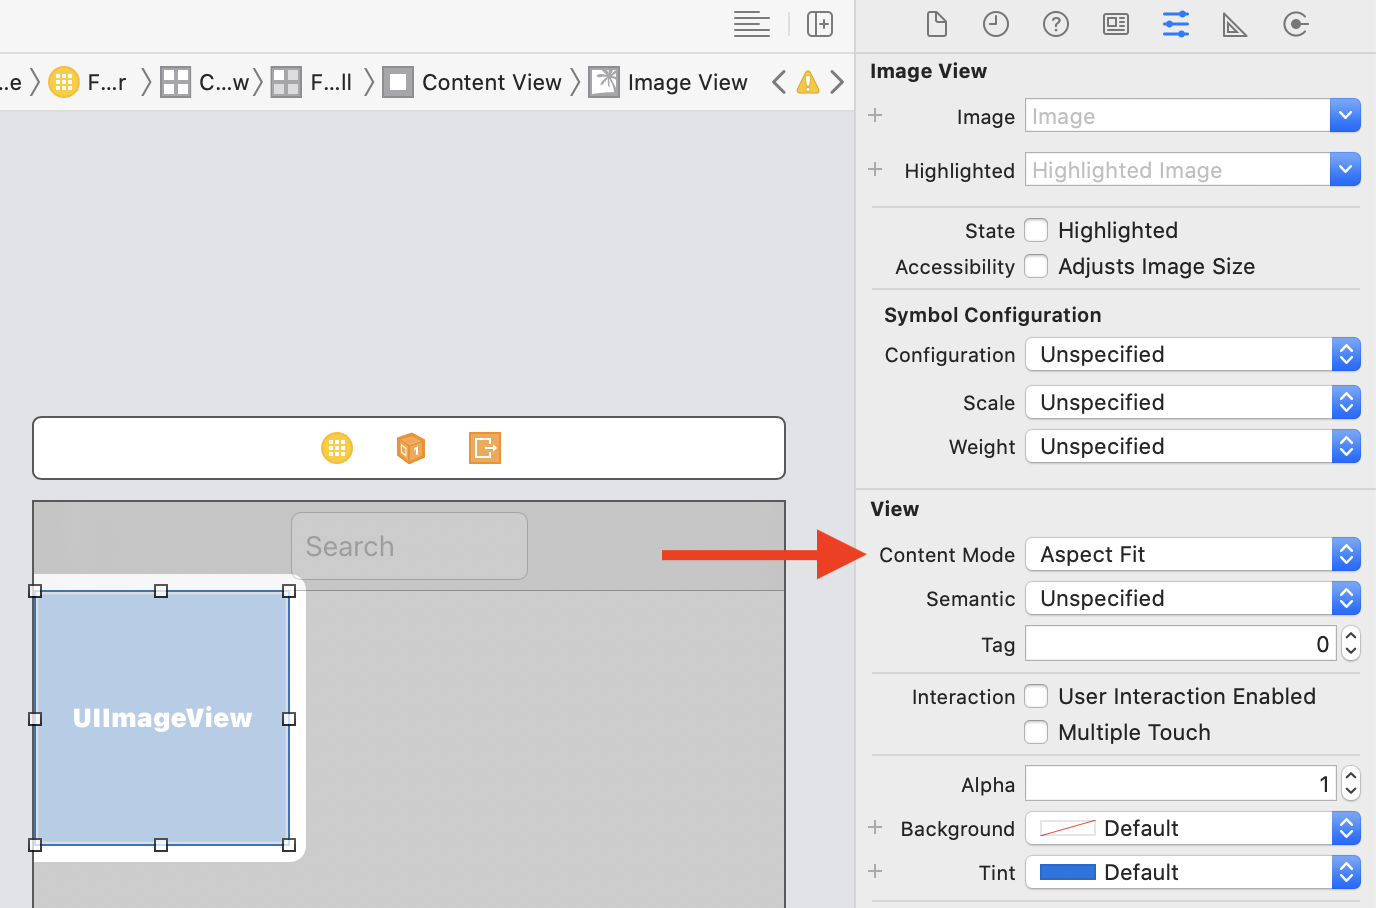 Setting the image view content mode to aspect fit